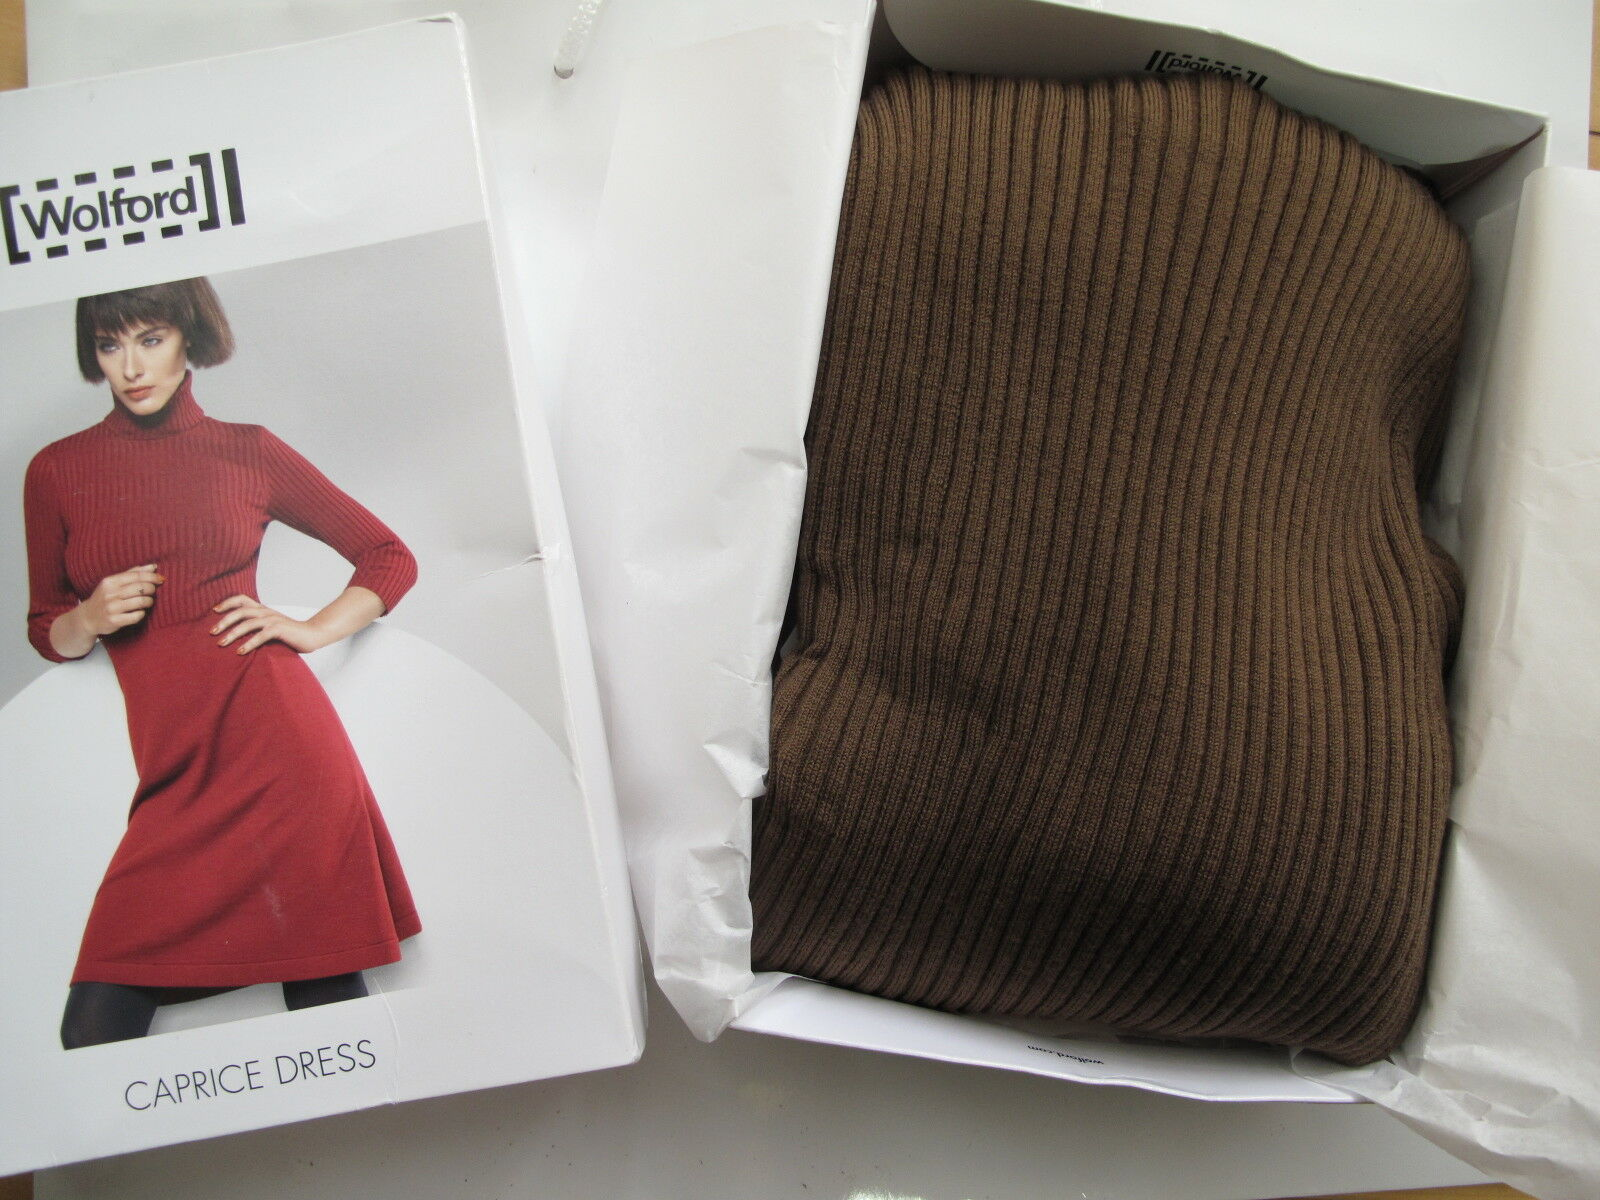 699 •  NIB • • •  WOLFORD • CAPRICE • Ribbed Knit Dress • Bison • XS 6bd926